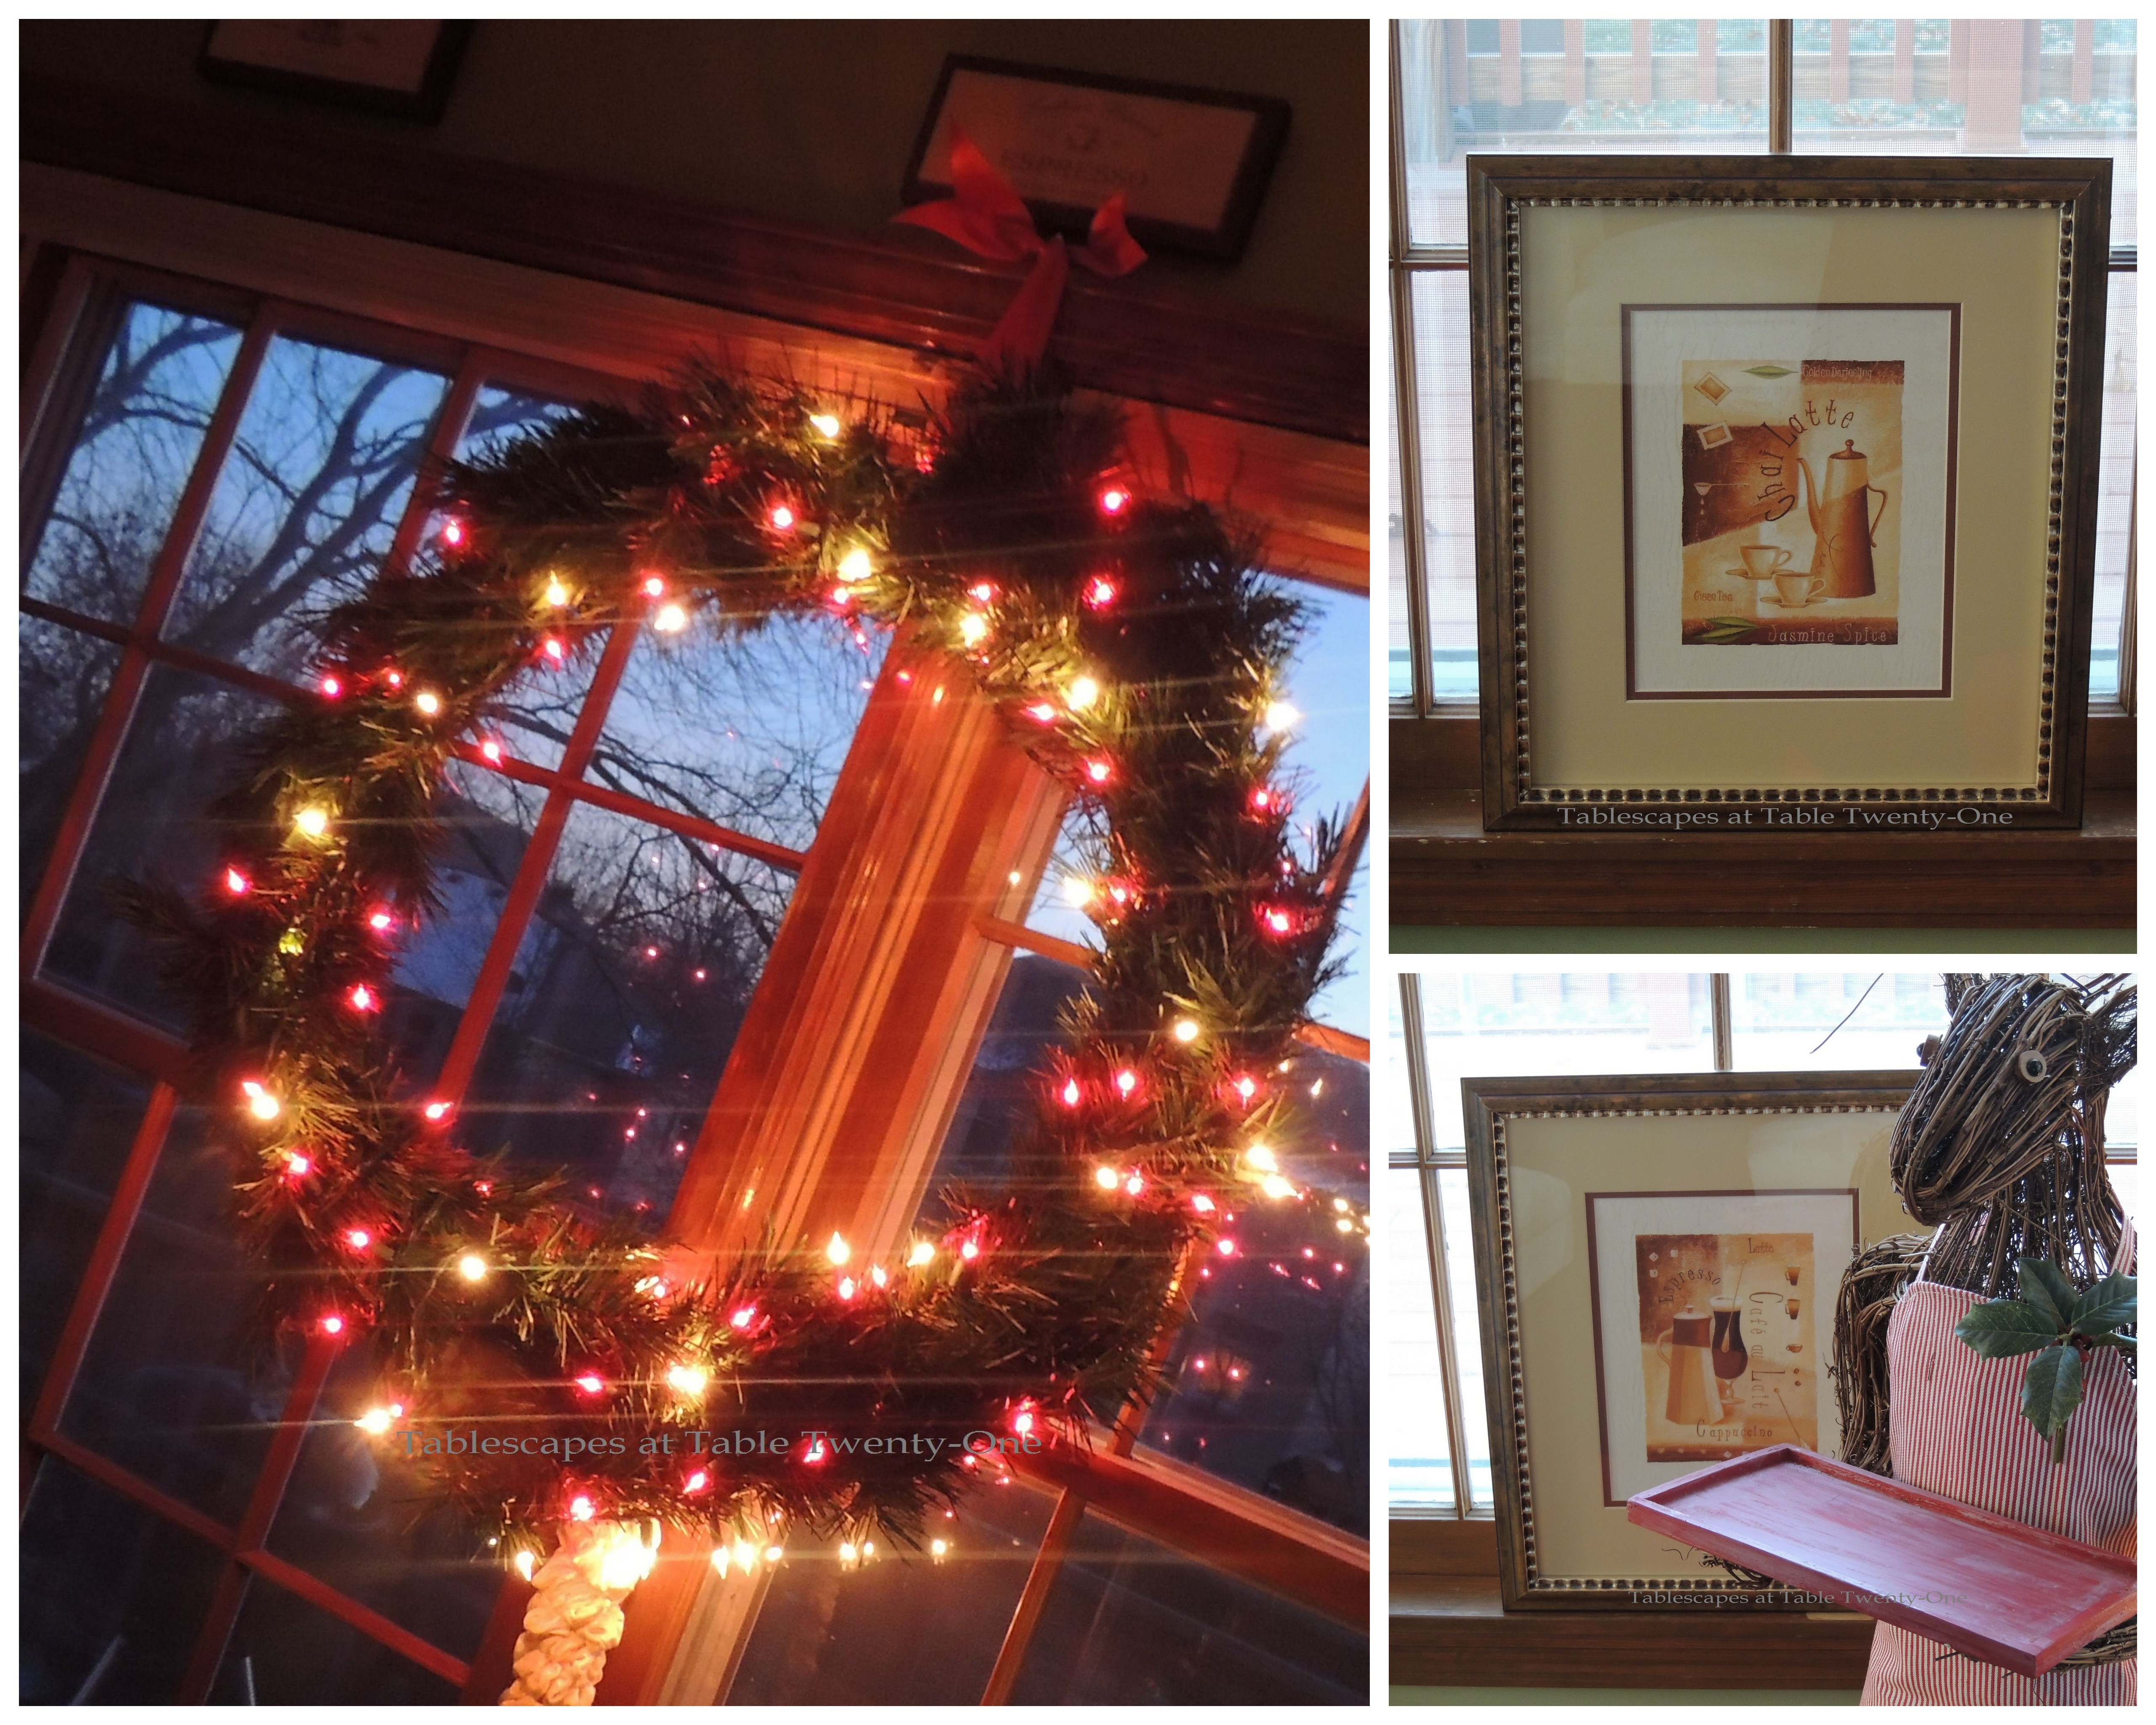 Tablescapes at Table Twenty-One, Christmas Coffee: Wreath, coffee prints collage